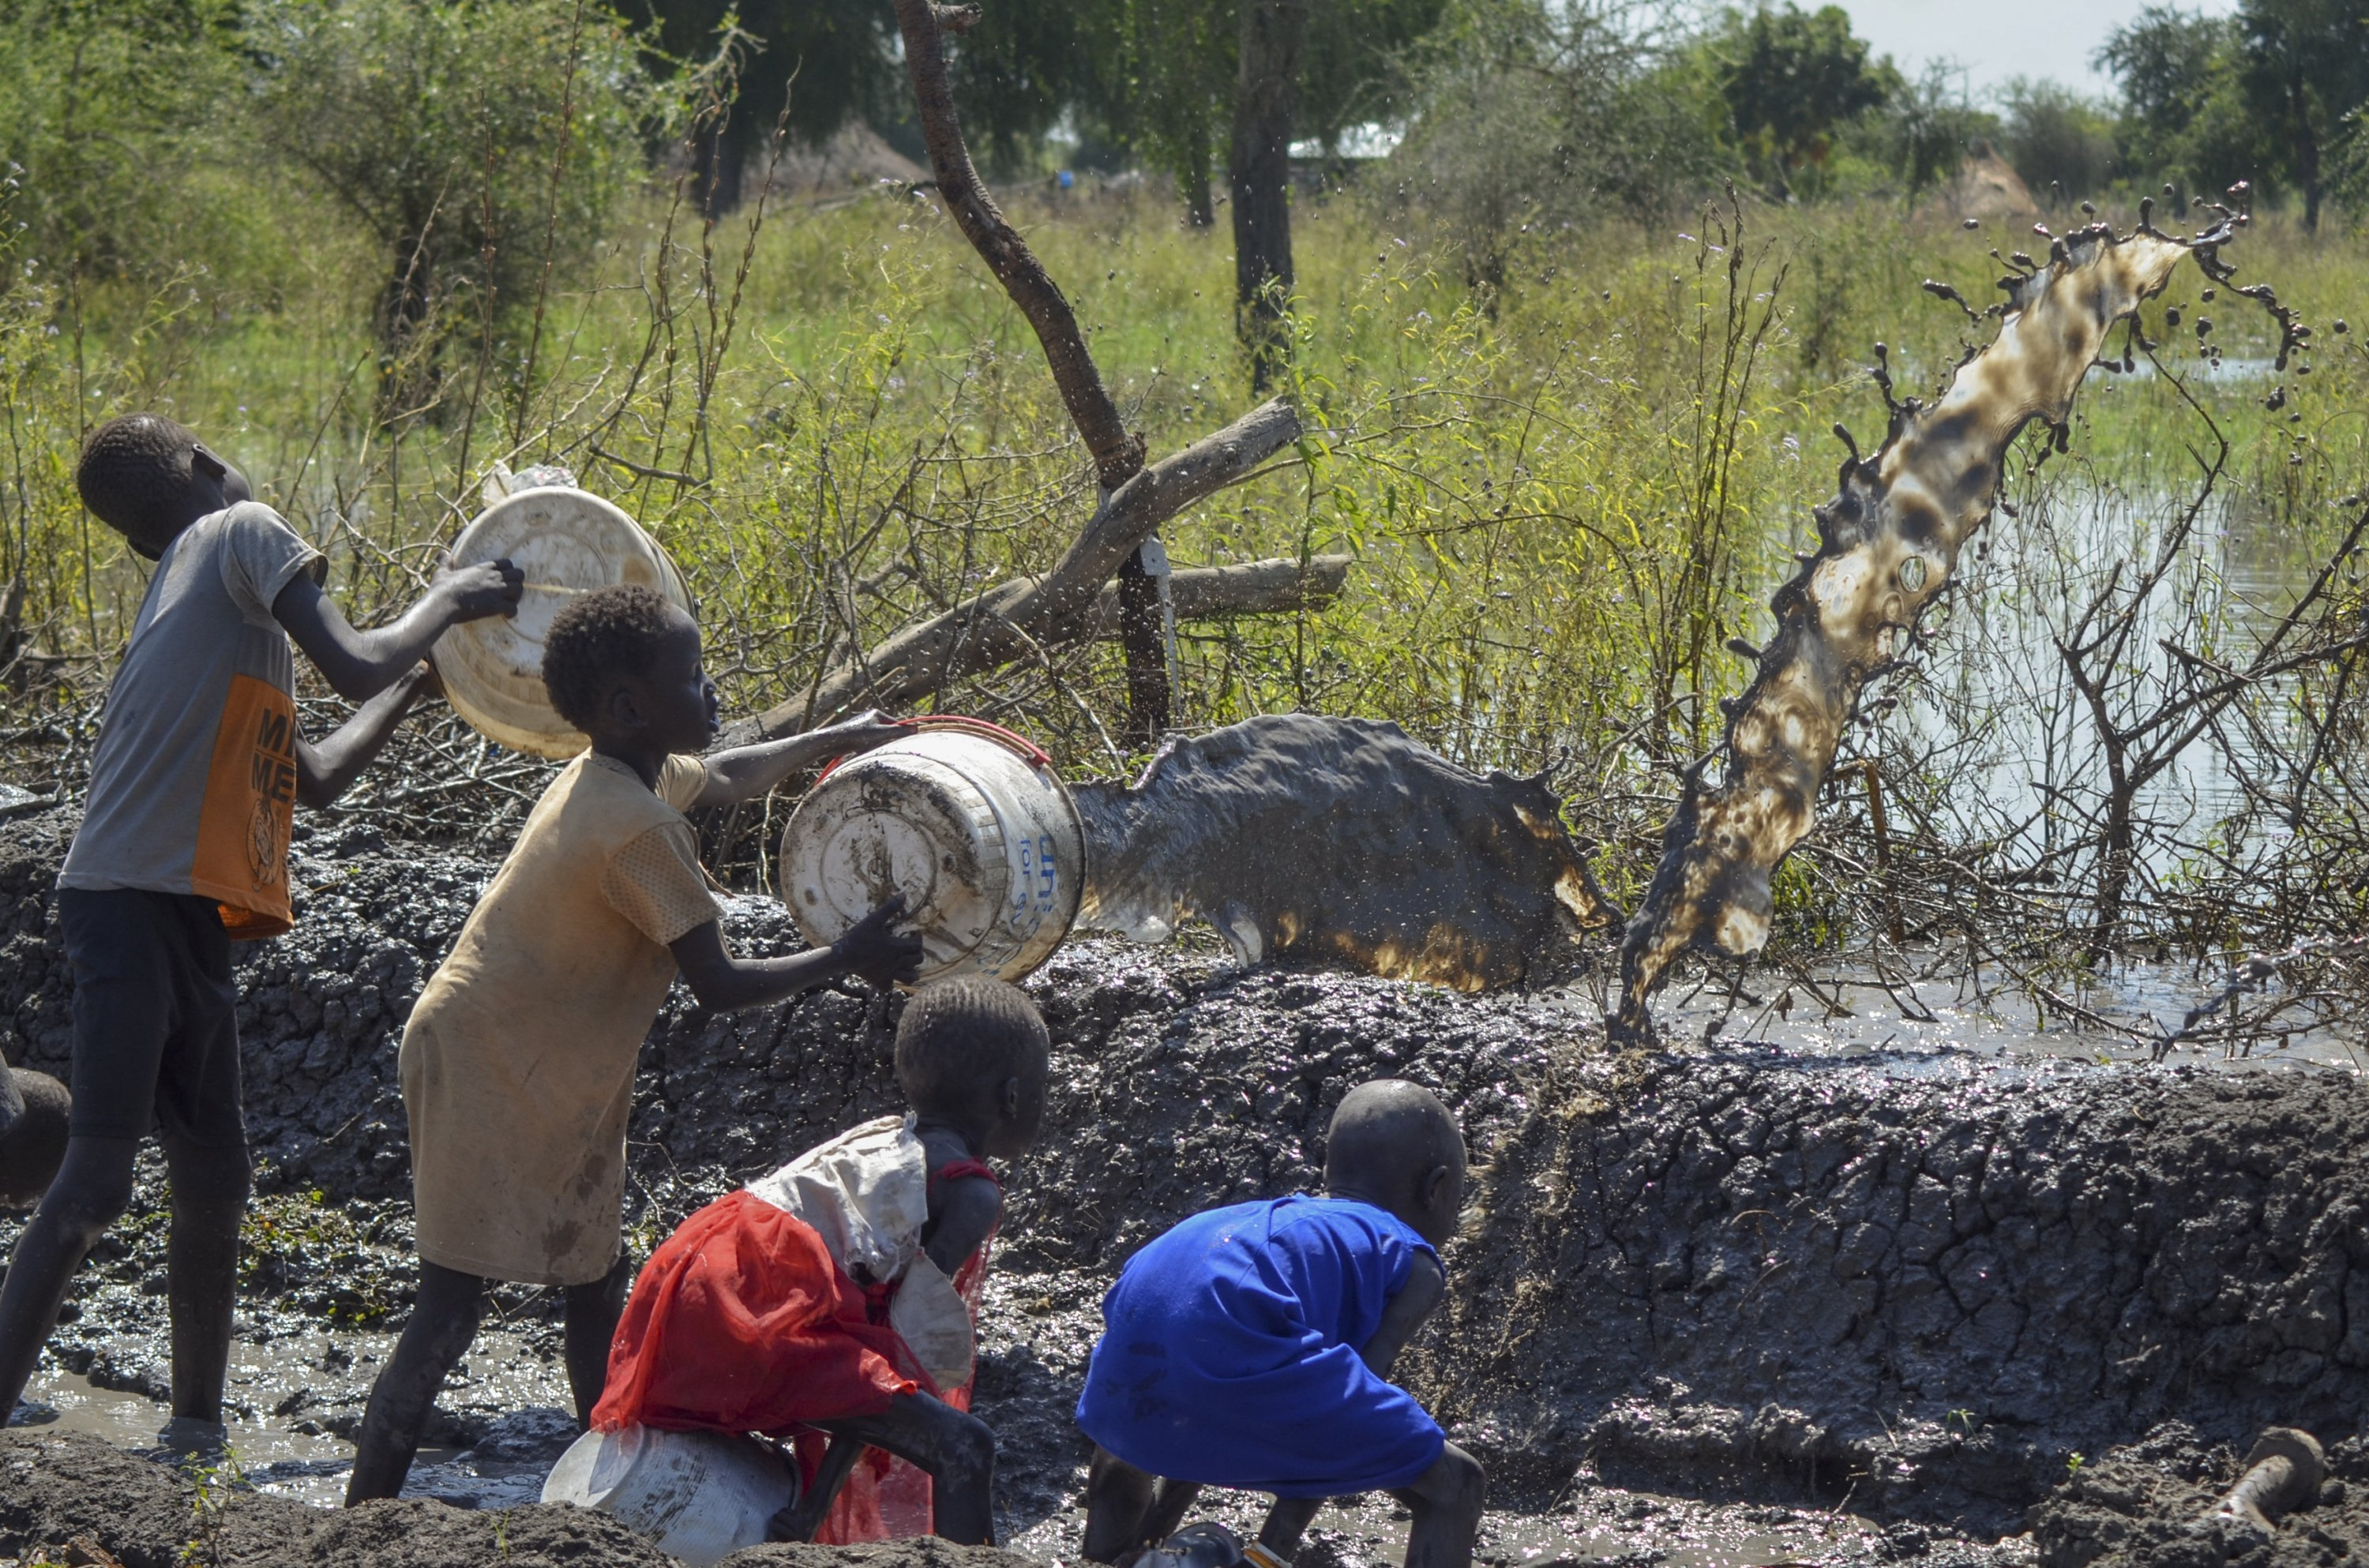 Children use buckets to clear muddy floodwater from a dyke in the village of Wang Chot, Old Fangak county, Jonglei state, South Sudan, Nov. 26, 2020. (AP Photo)